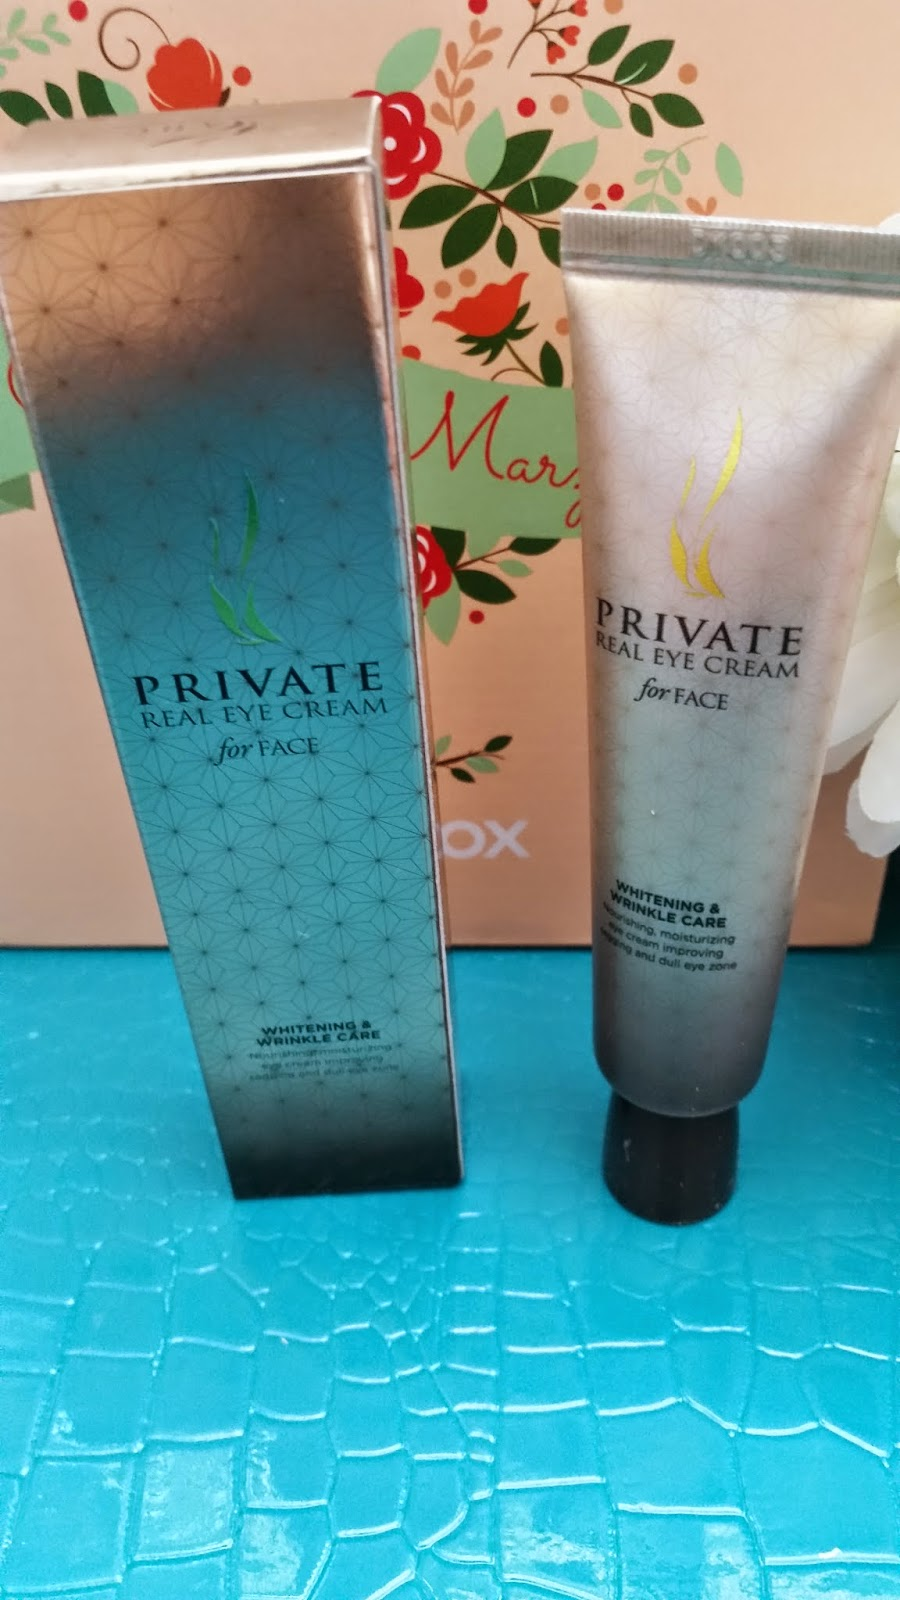 AHC Private Real Eye Cream